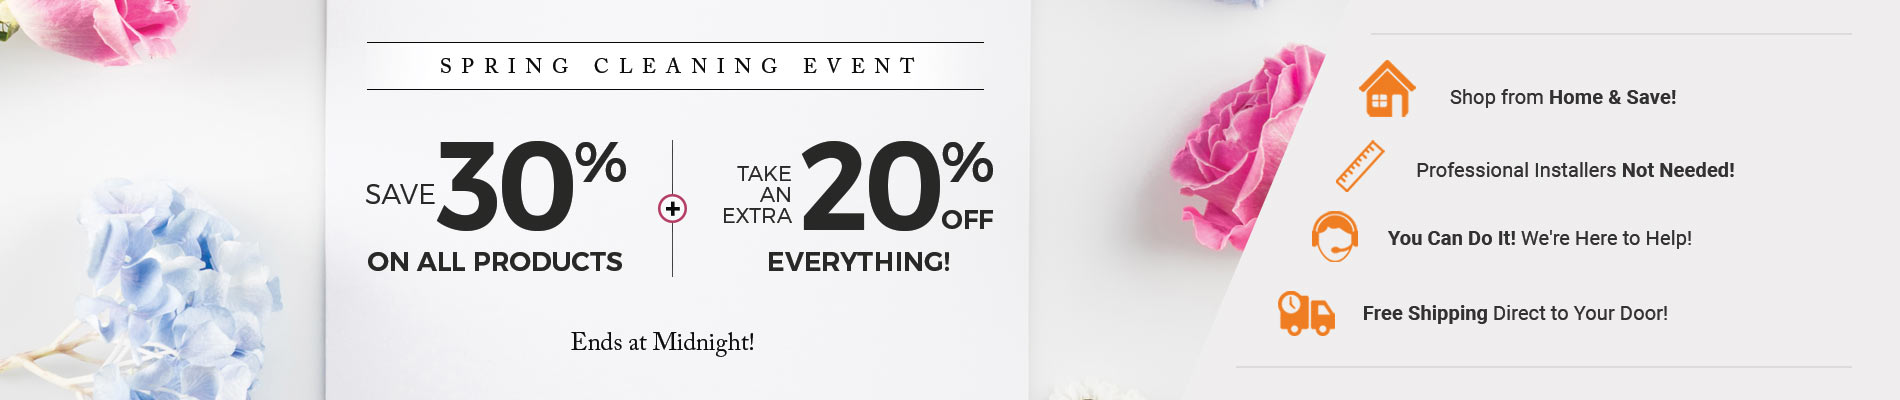 Save 30% on All Products+ 20% Off Everything